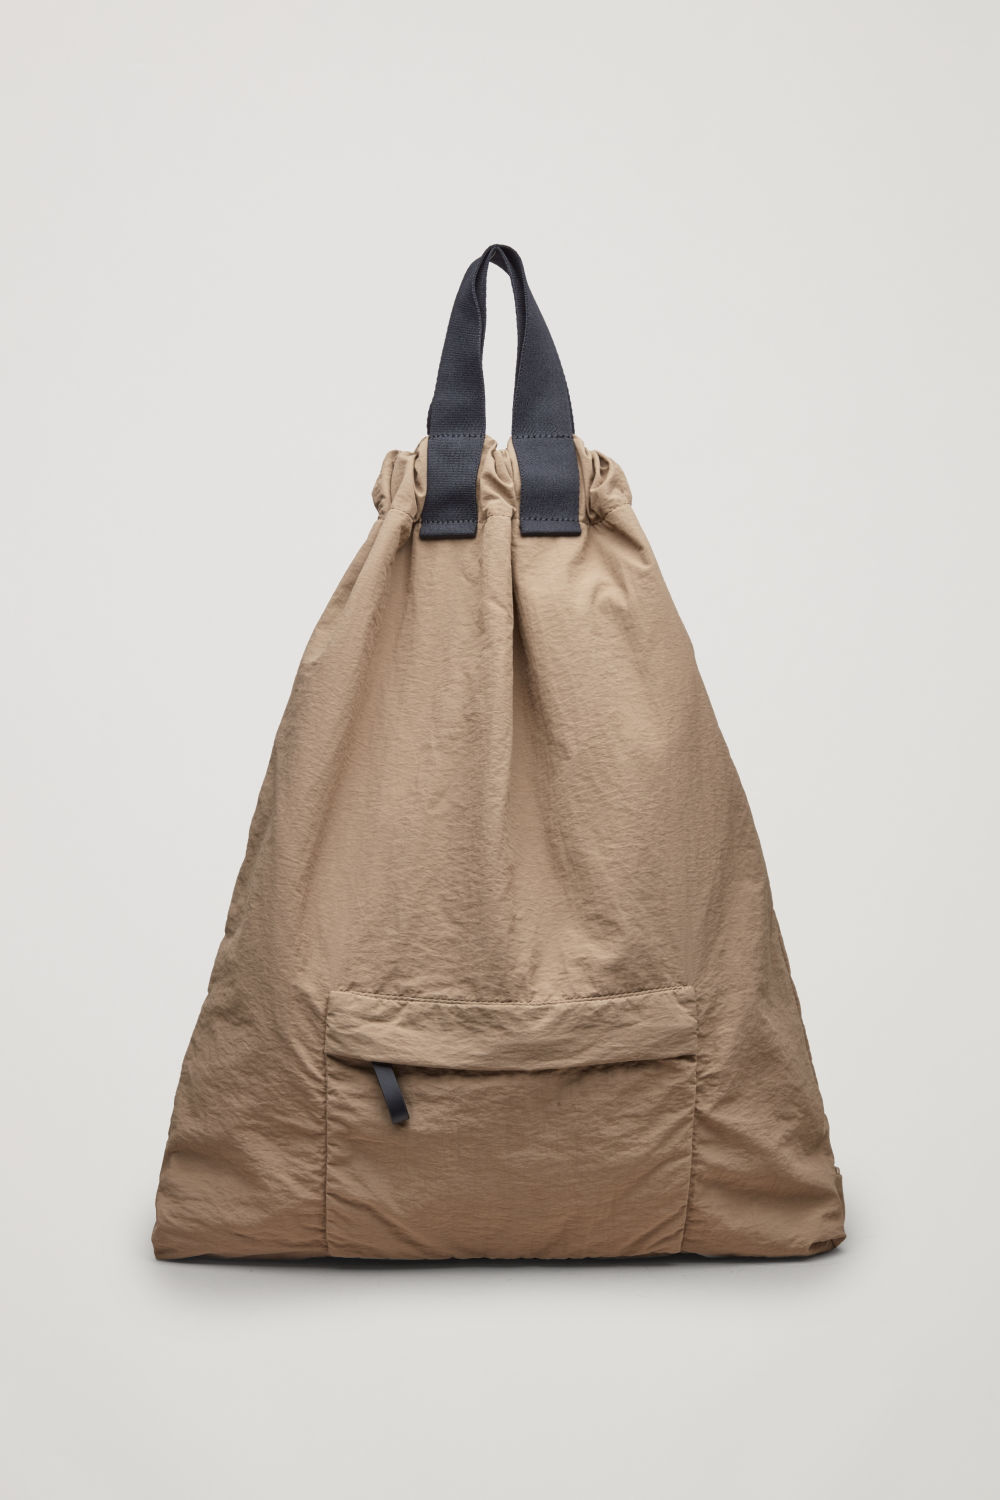 TECHNICAL DRAWSTRING BACKPACK